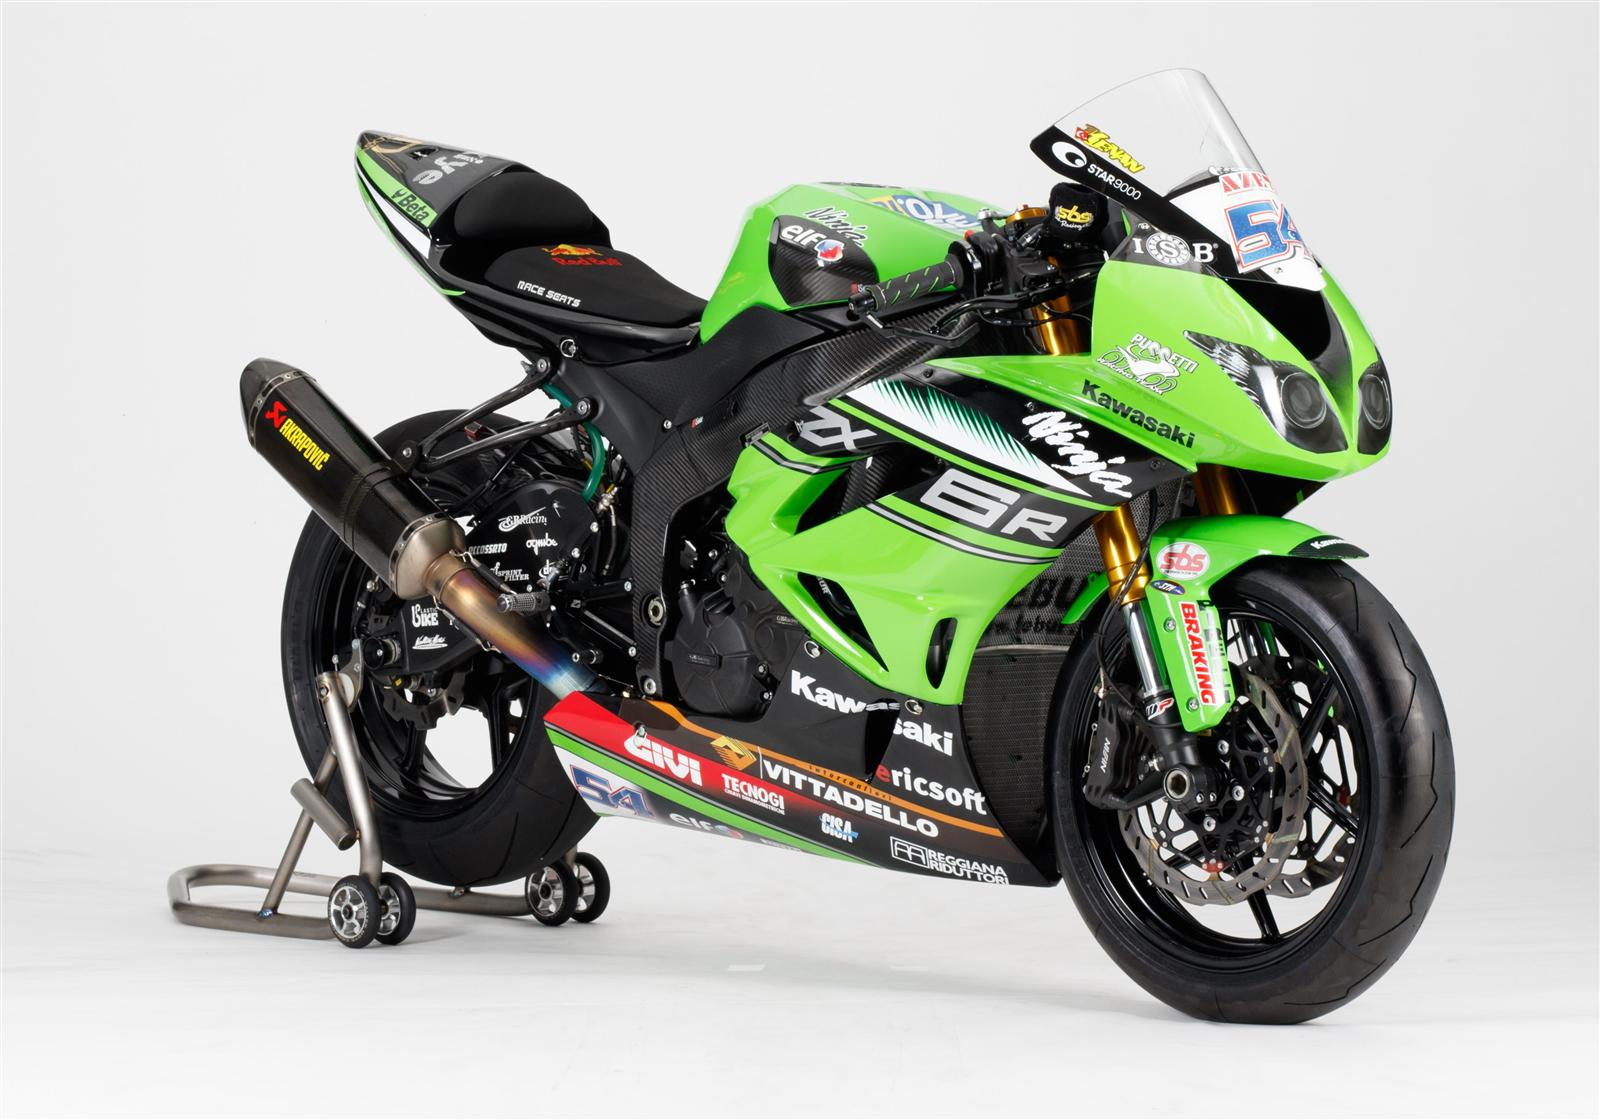 Kawasaki race bike